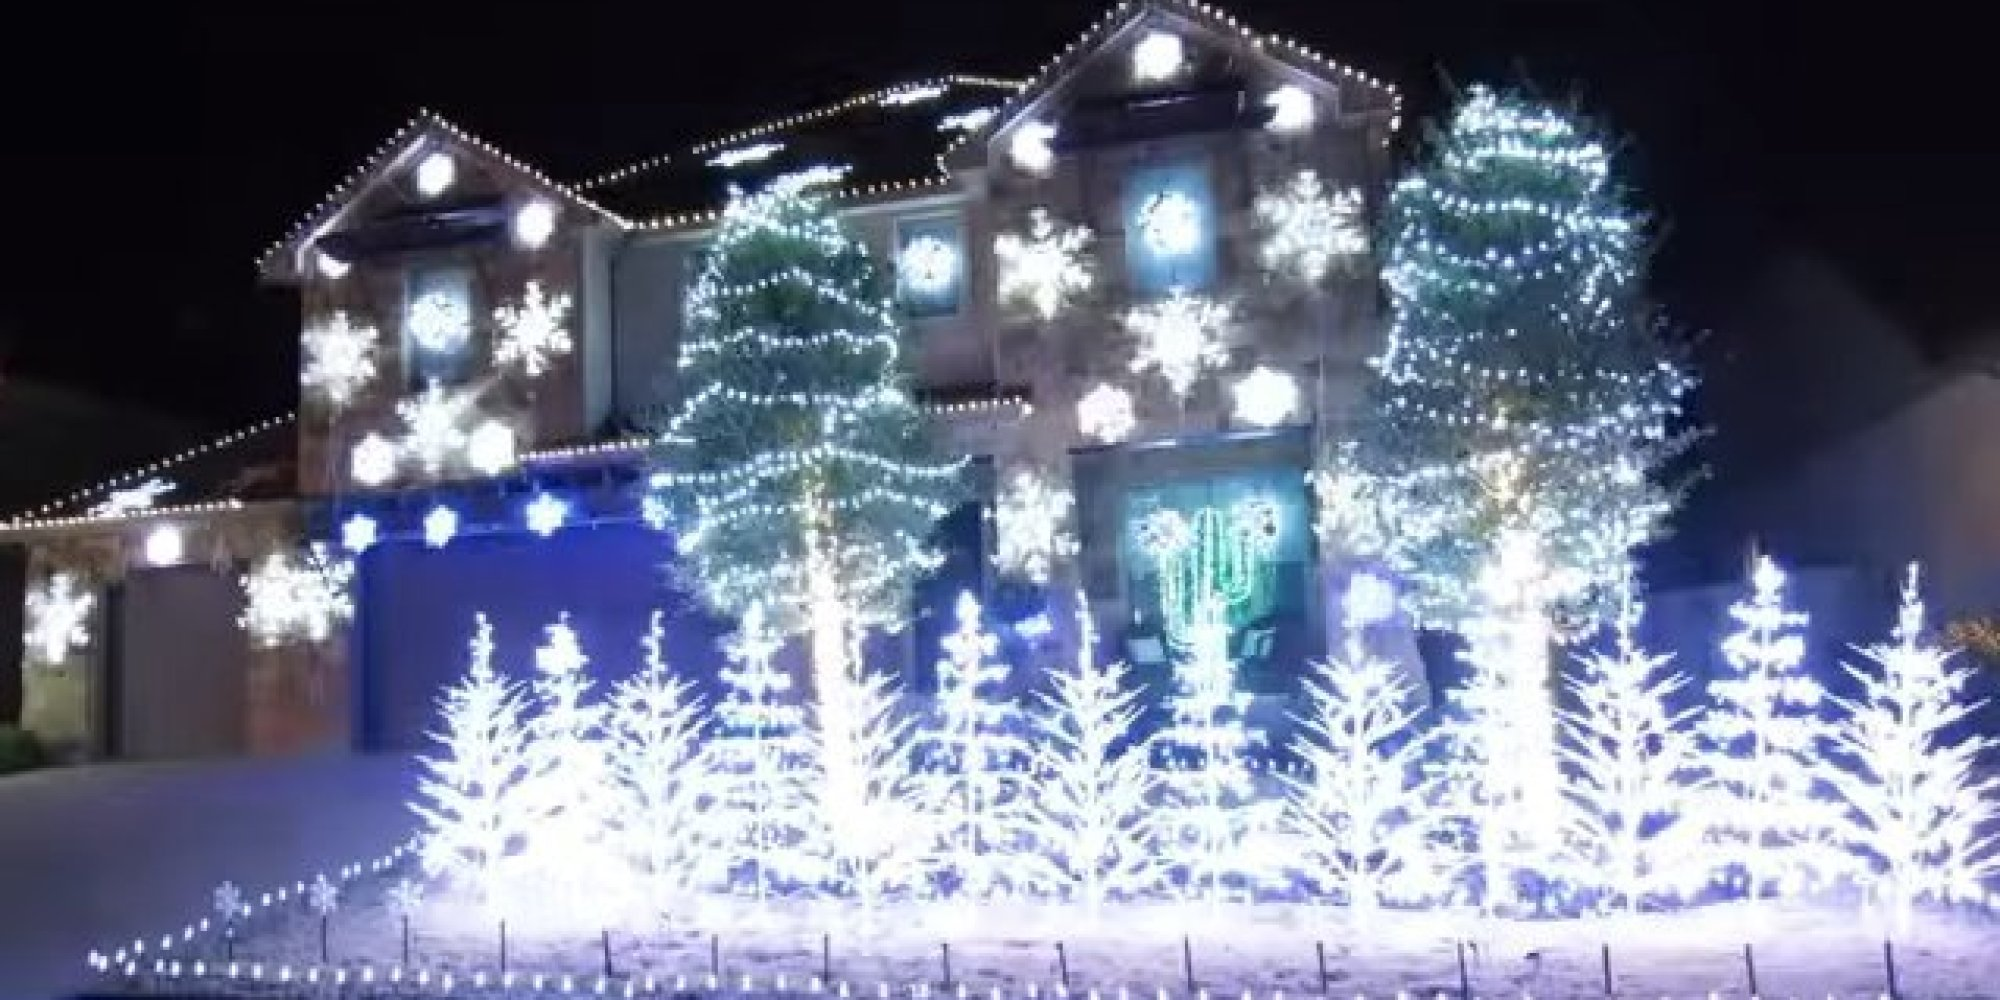 Lovable Sale Yourtracks Huffpost Let It Light Display Is So It Will Freeze You It Light Display Is So It Will Freeze You Laser Lights Canada Laser Lights houzz 01 White Laser Christmas Lights